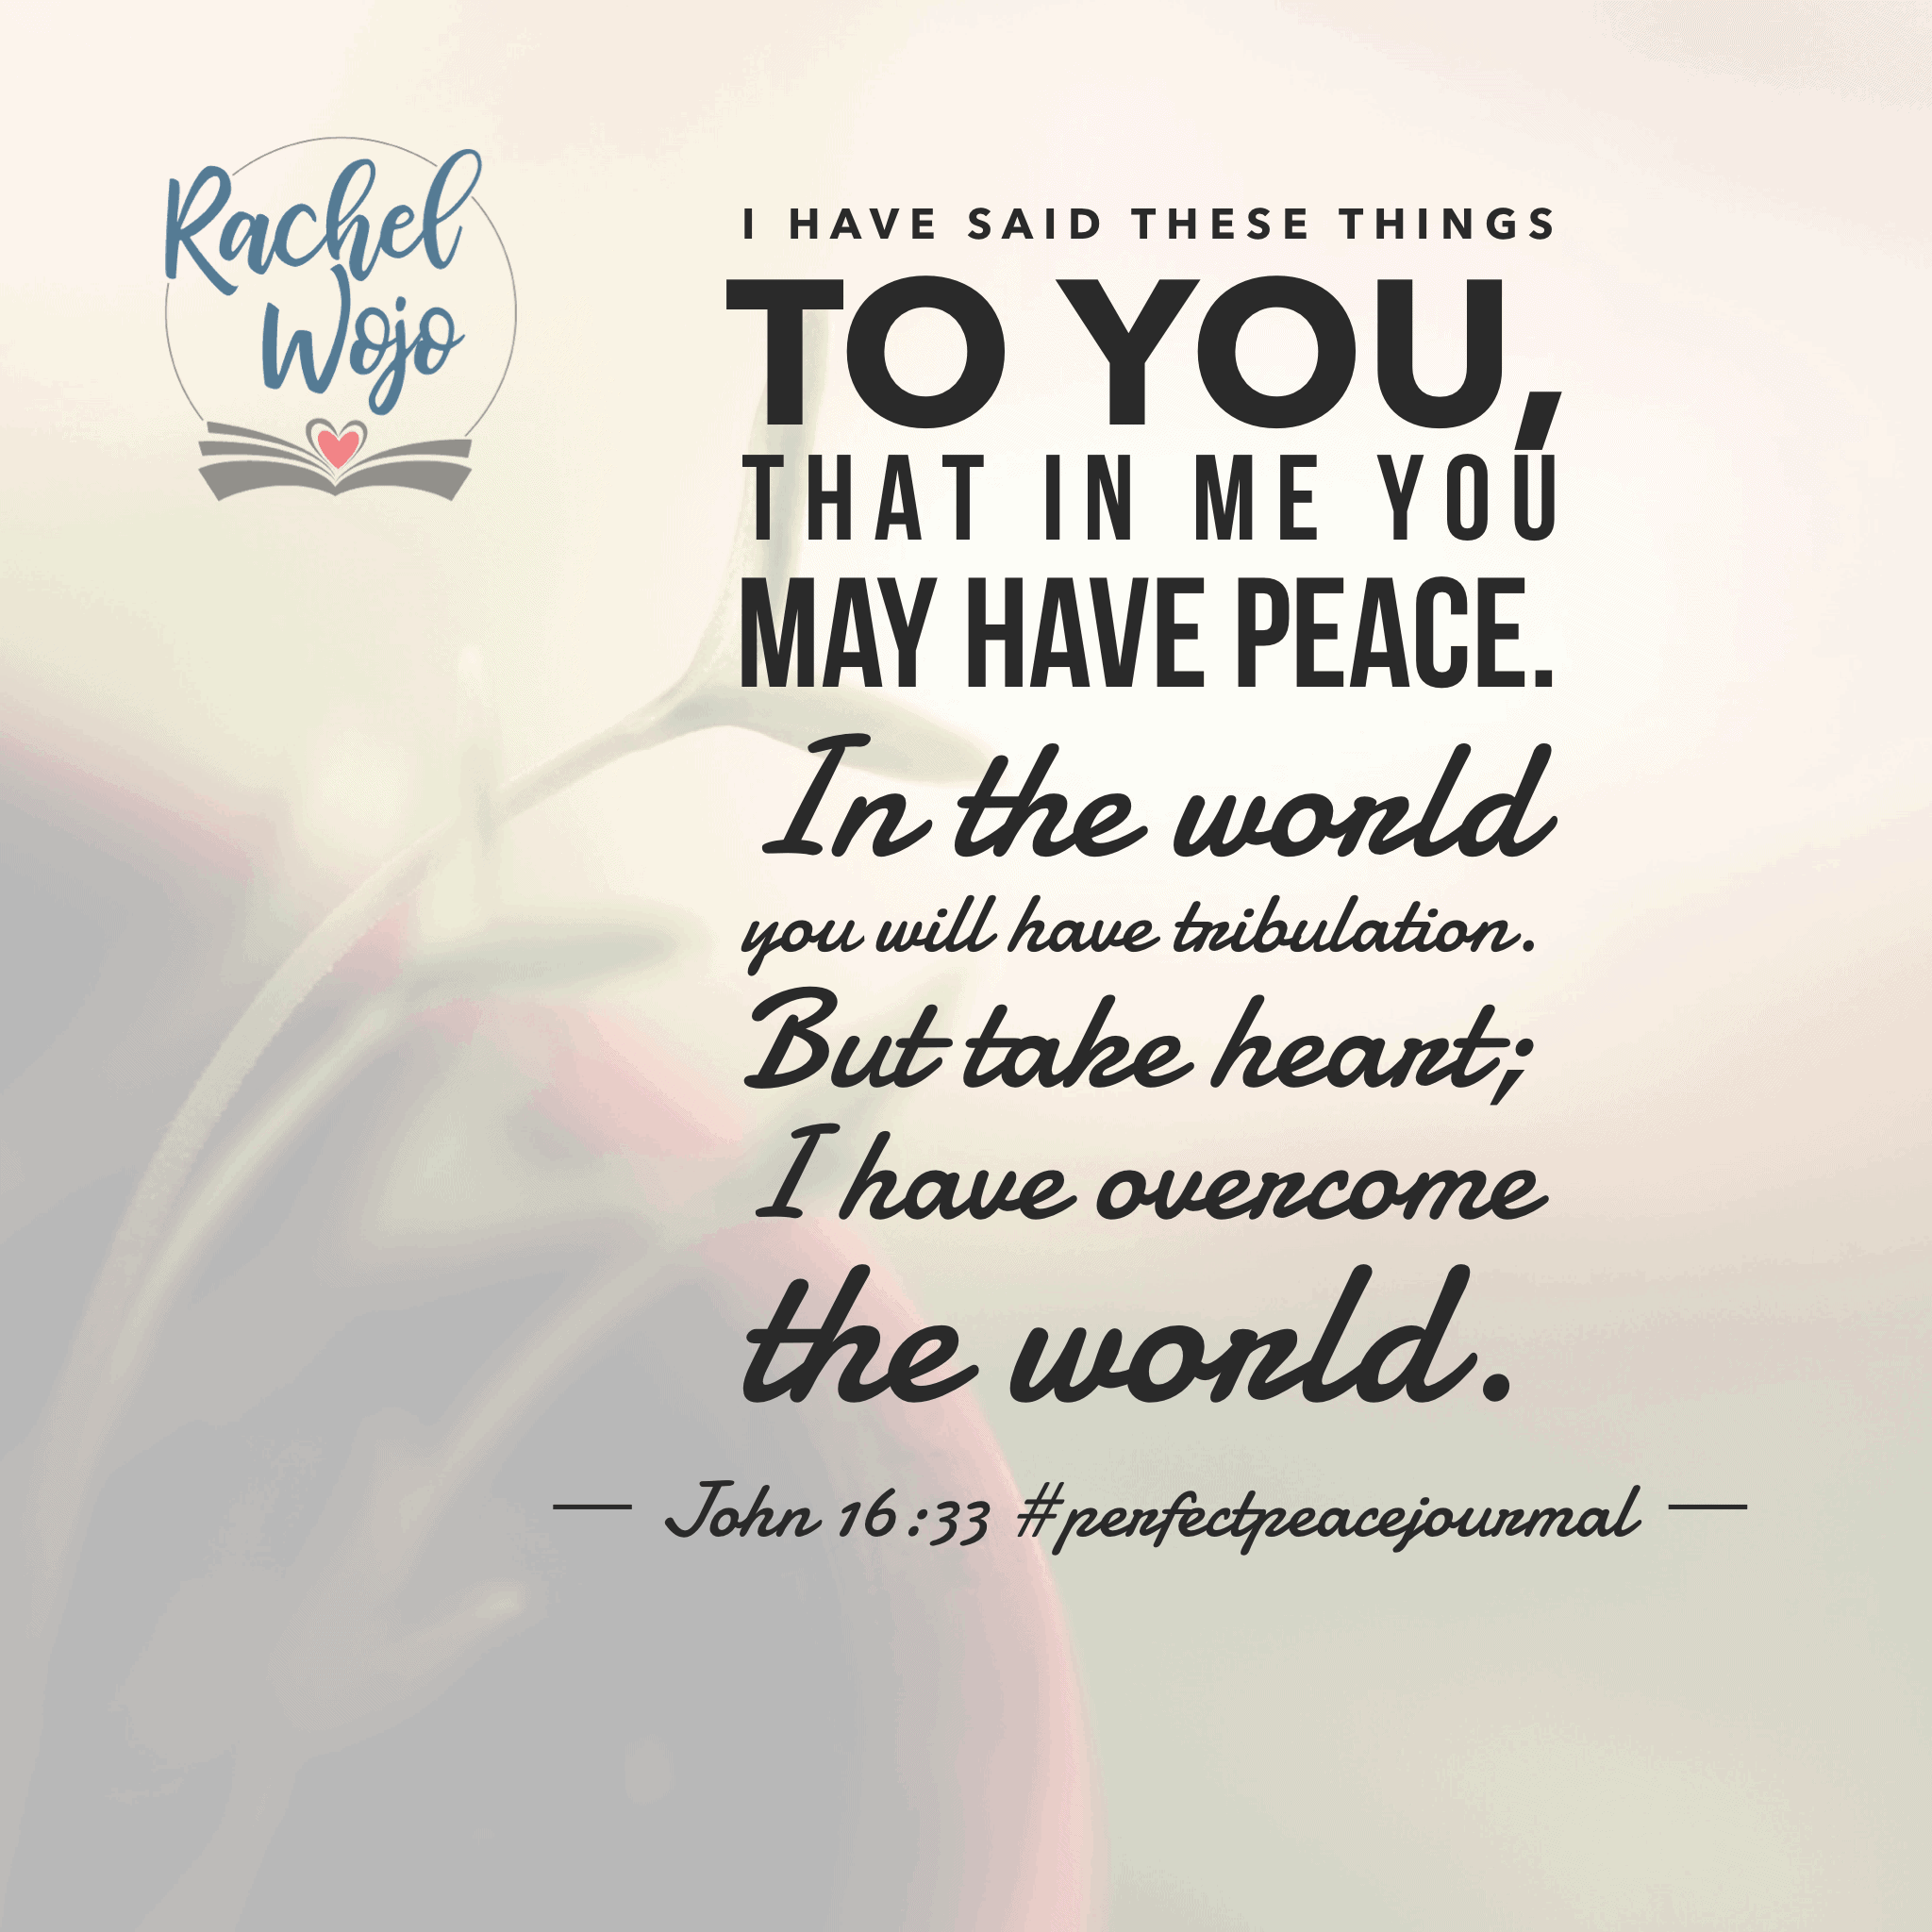 Peace won't be found in anything or anyone except Jesus. In Him, we have perfect peace. So thankful for this month of June and the #perfectpeacejournal#biblereadingplan ! Tomorrow's July 1st; be sure to join in for a month of recognizing God is bigger than whatever we face